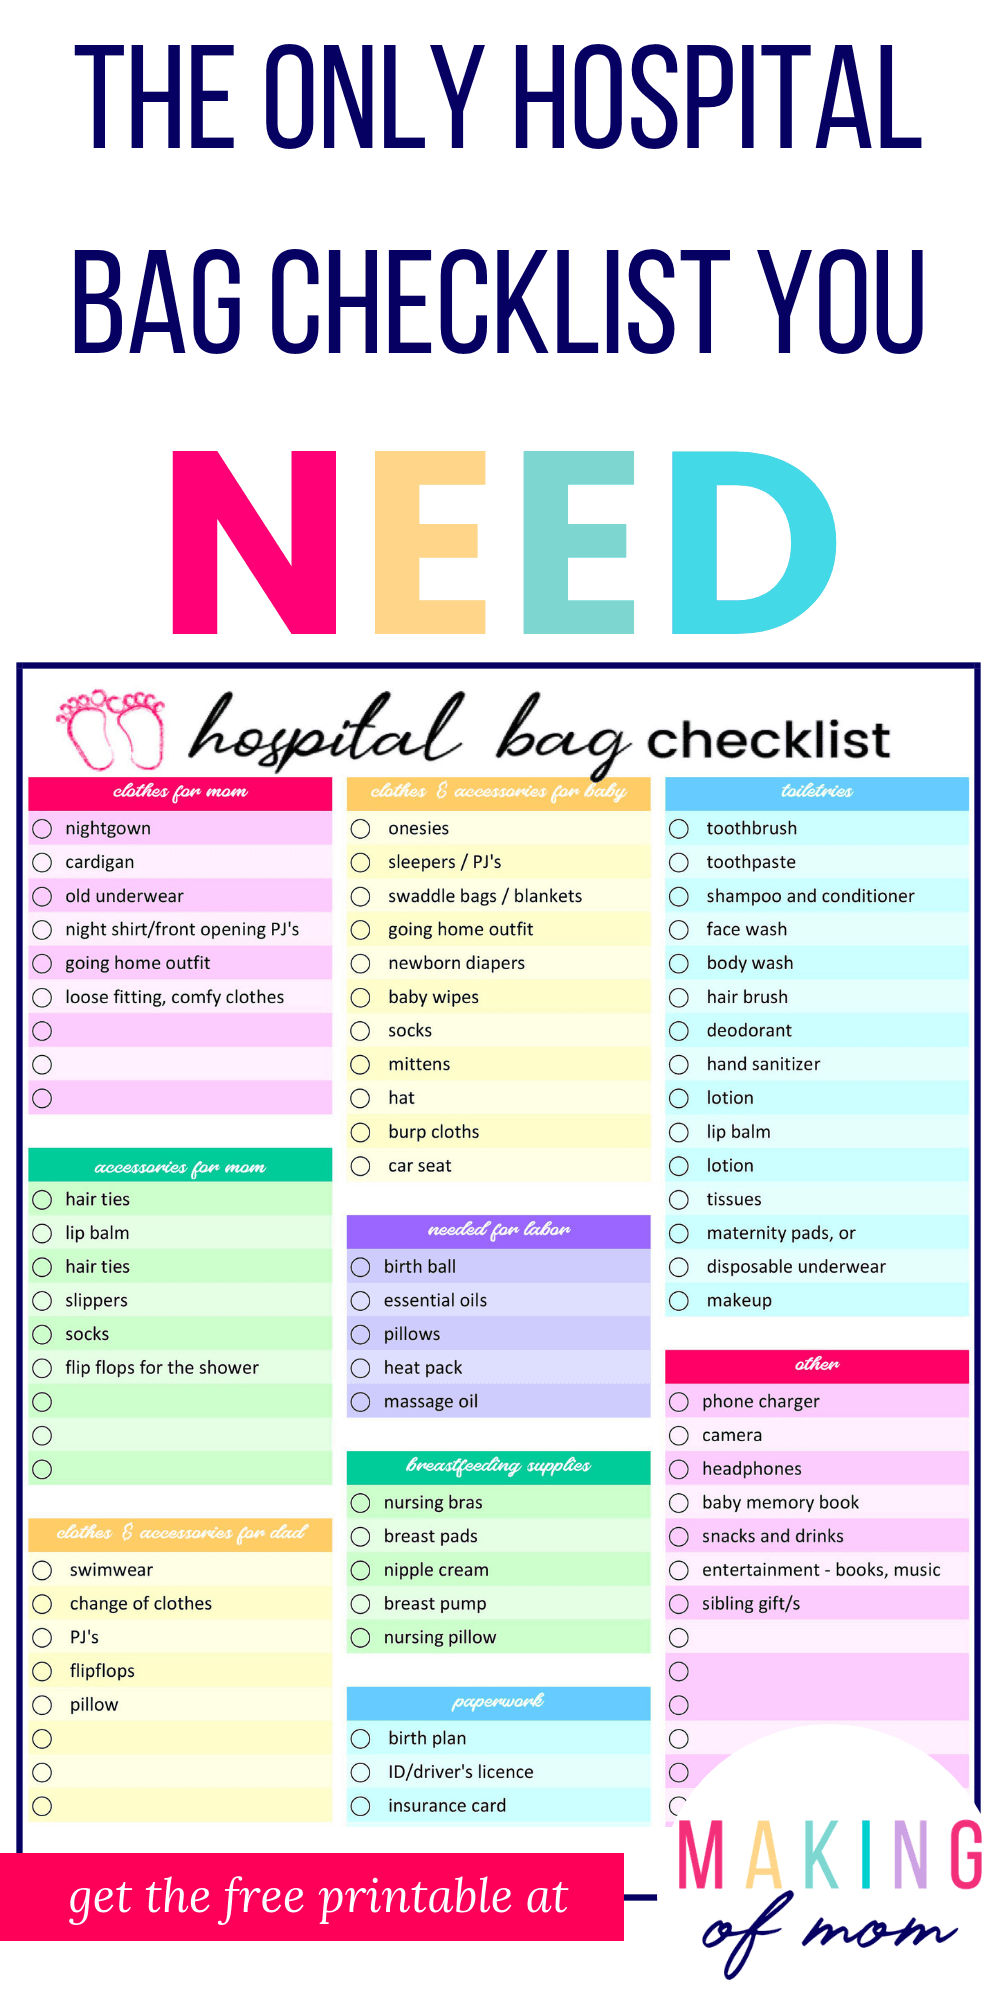 photograph relating to Printable Hospital Bag Checklist referred to as clinic-bag-record-printable (2) - Developing of Mother